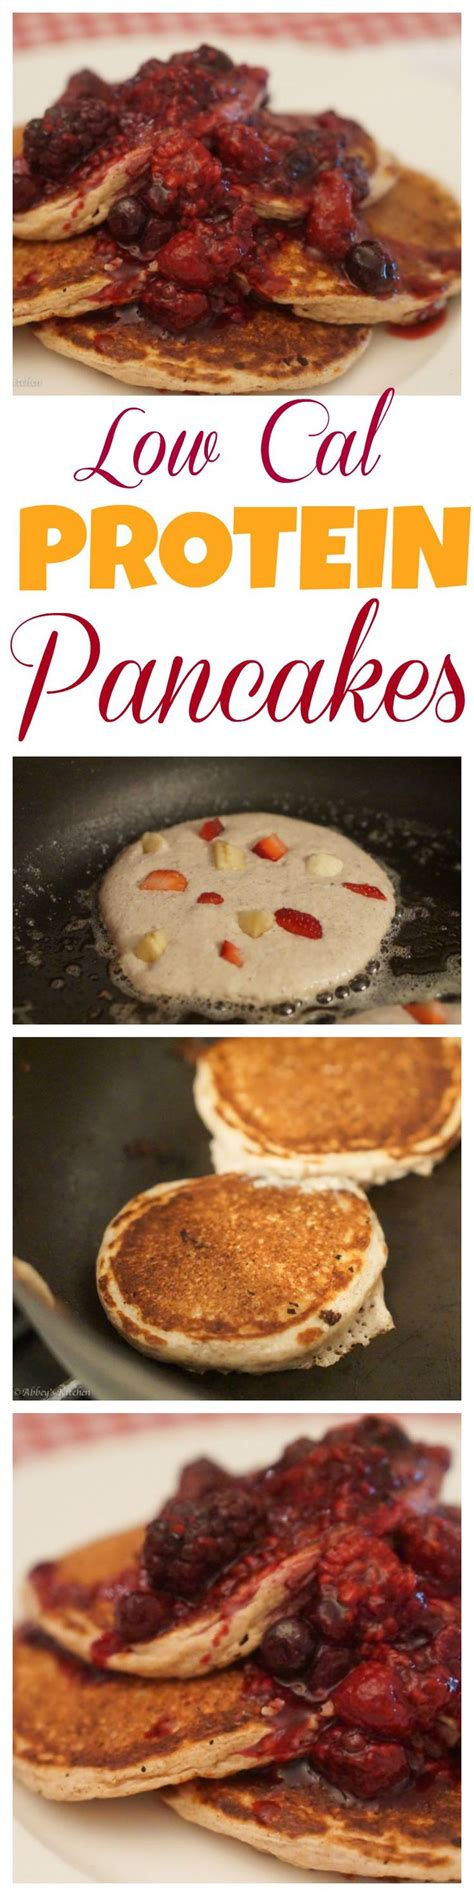 high protein cottage cheese oatmeal pancakes with